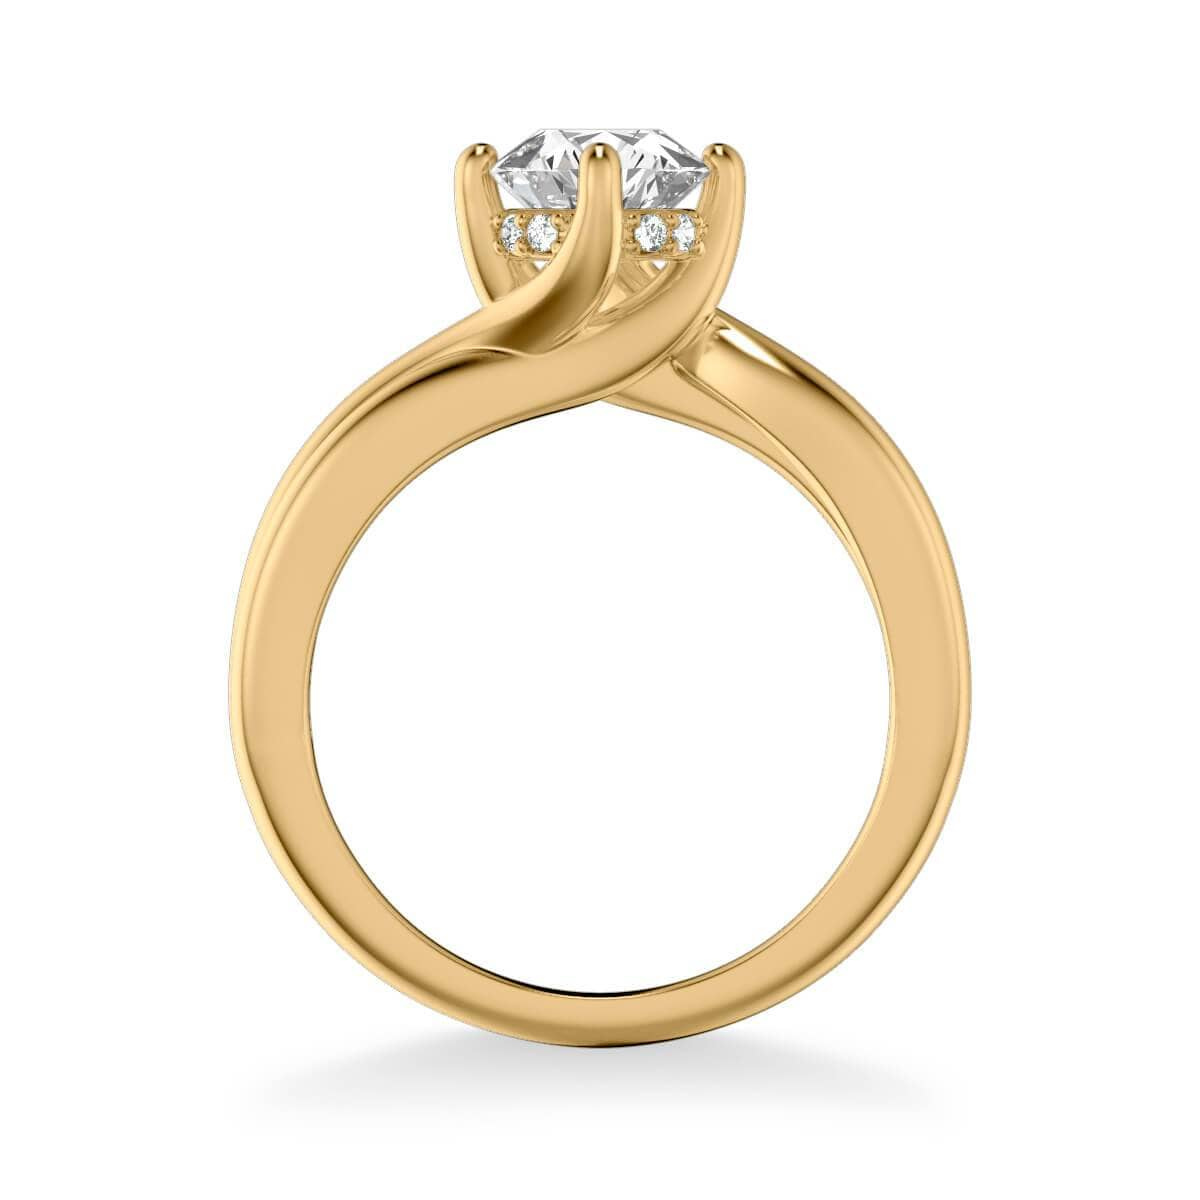 Whitney Contemporary Solitaire Twist Diamond Engagement Ring